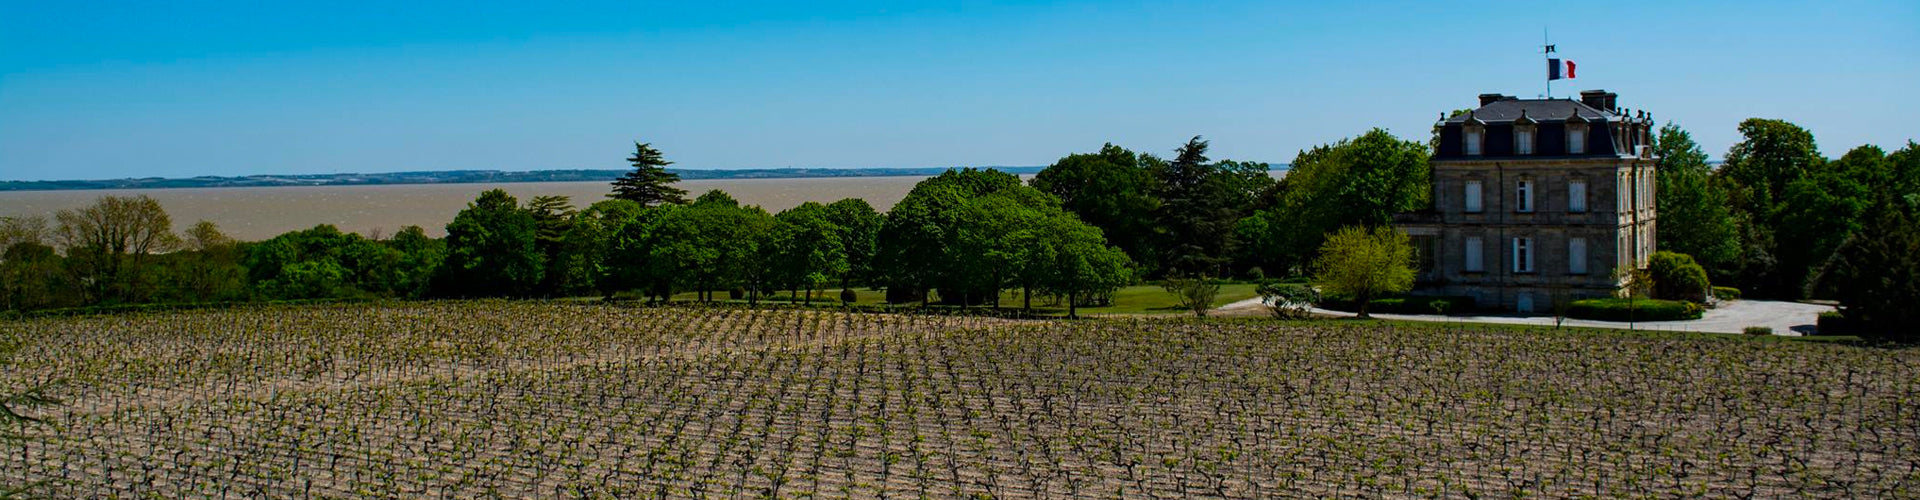 The Château La Tour de By and vineyards close to the Gironde in Bordeaux